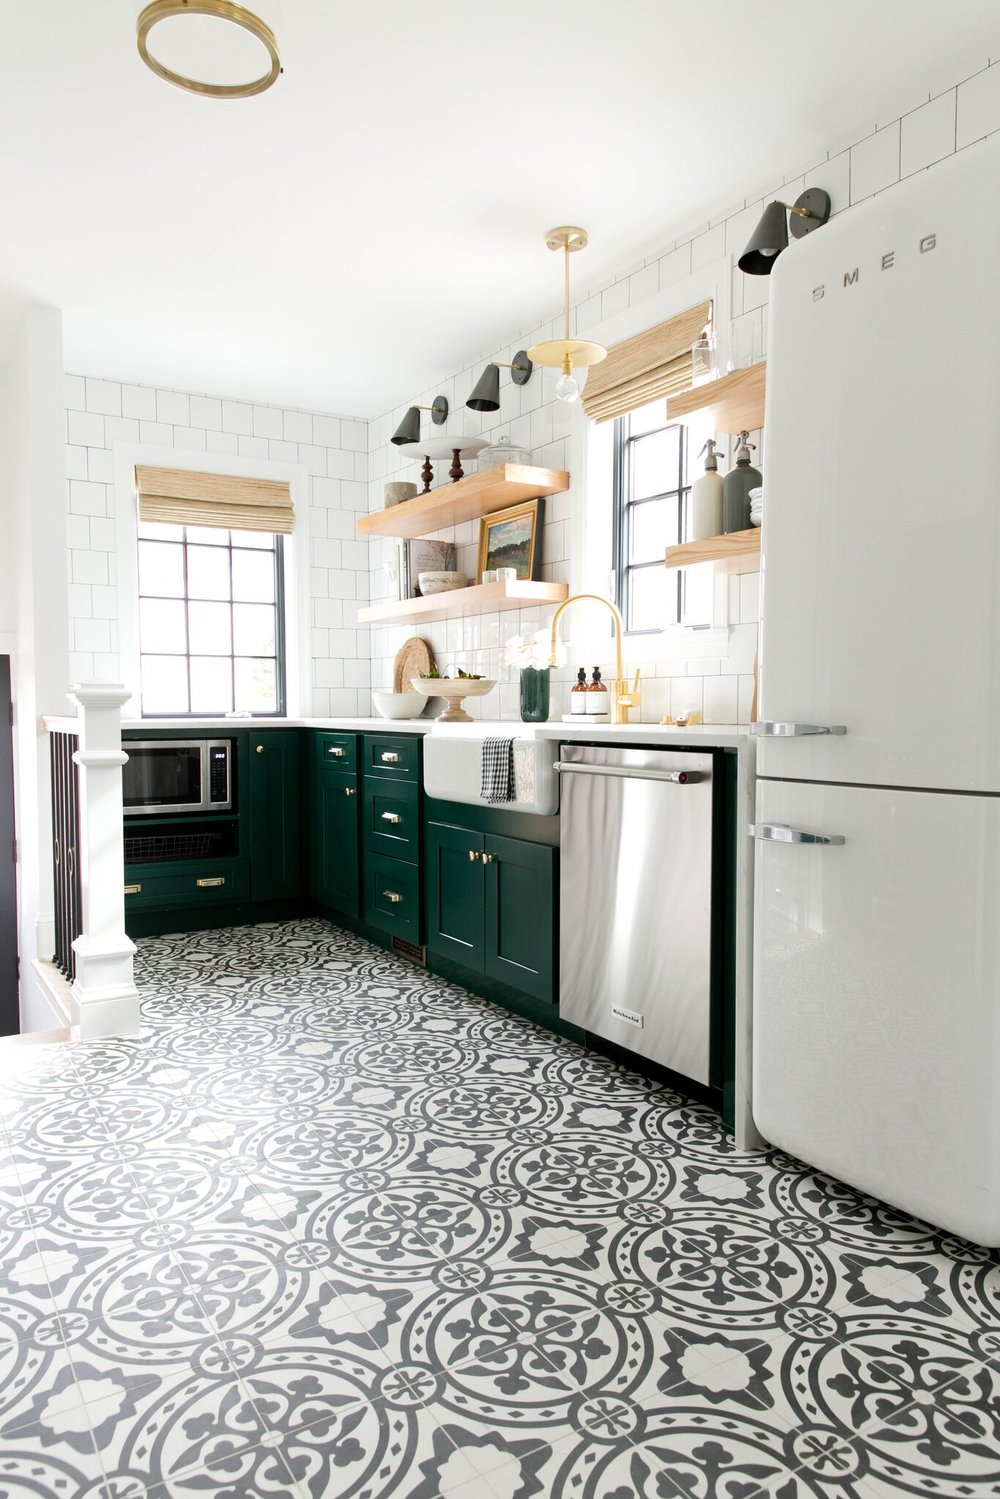 Black and white tiled floor of tudor kitchen